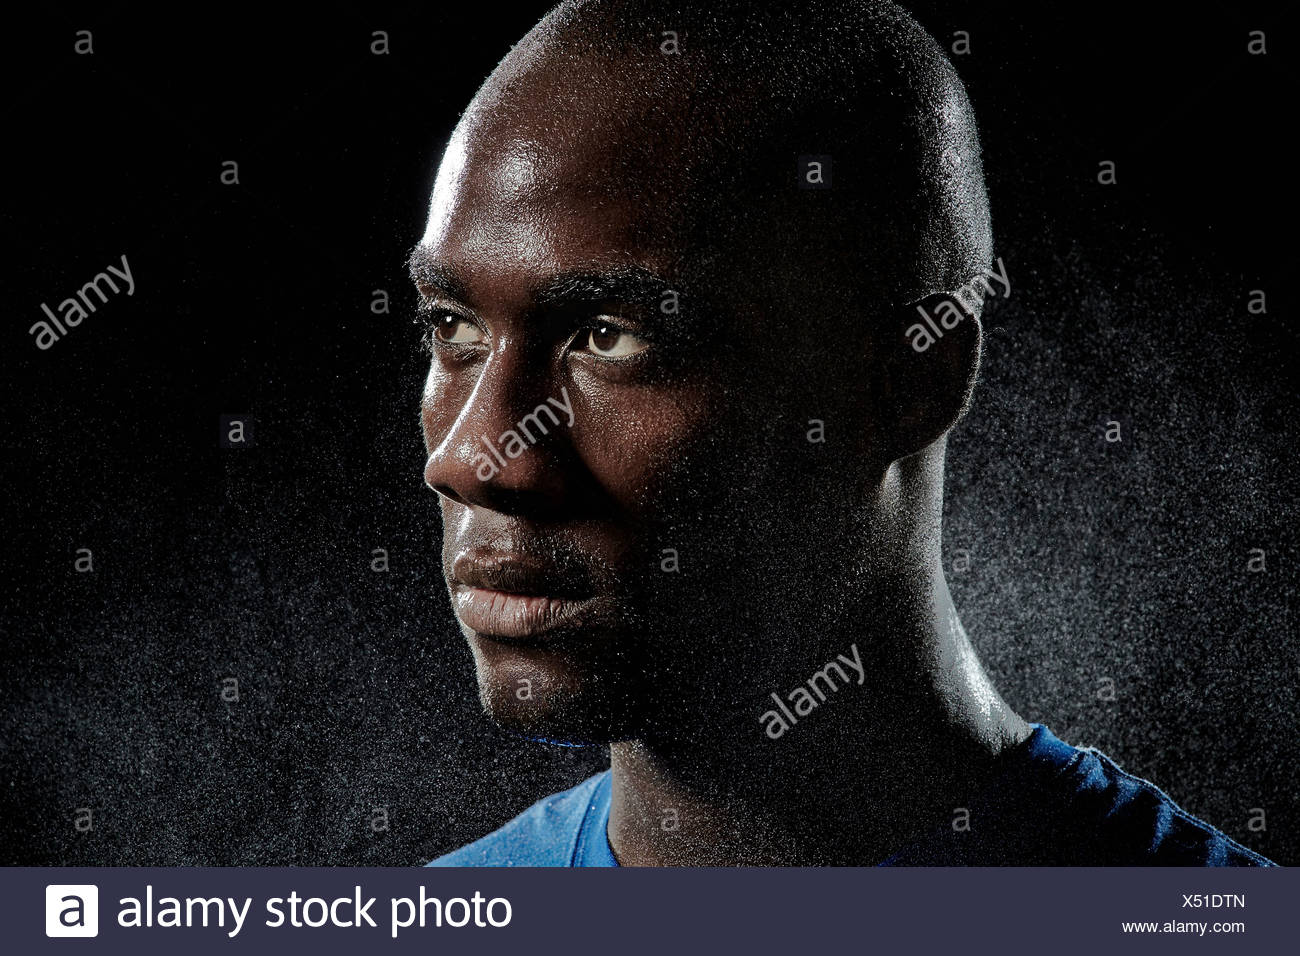 Close up portrait of basketball player Stock Photo